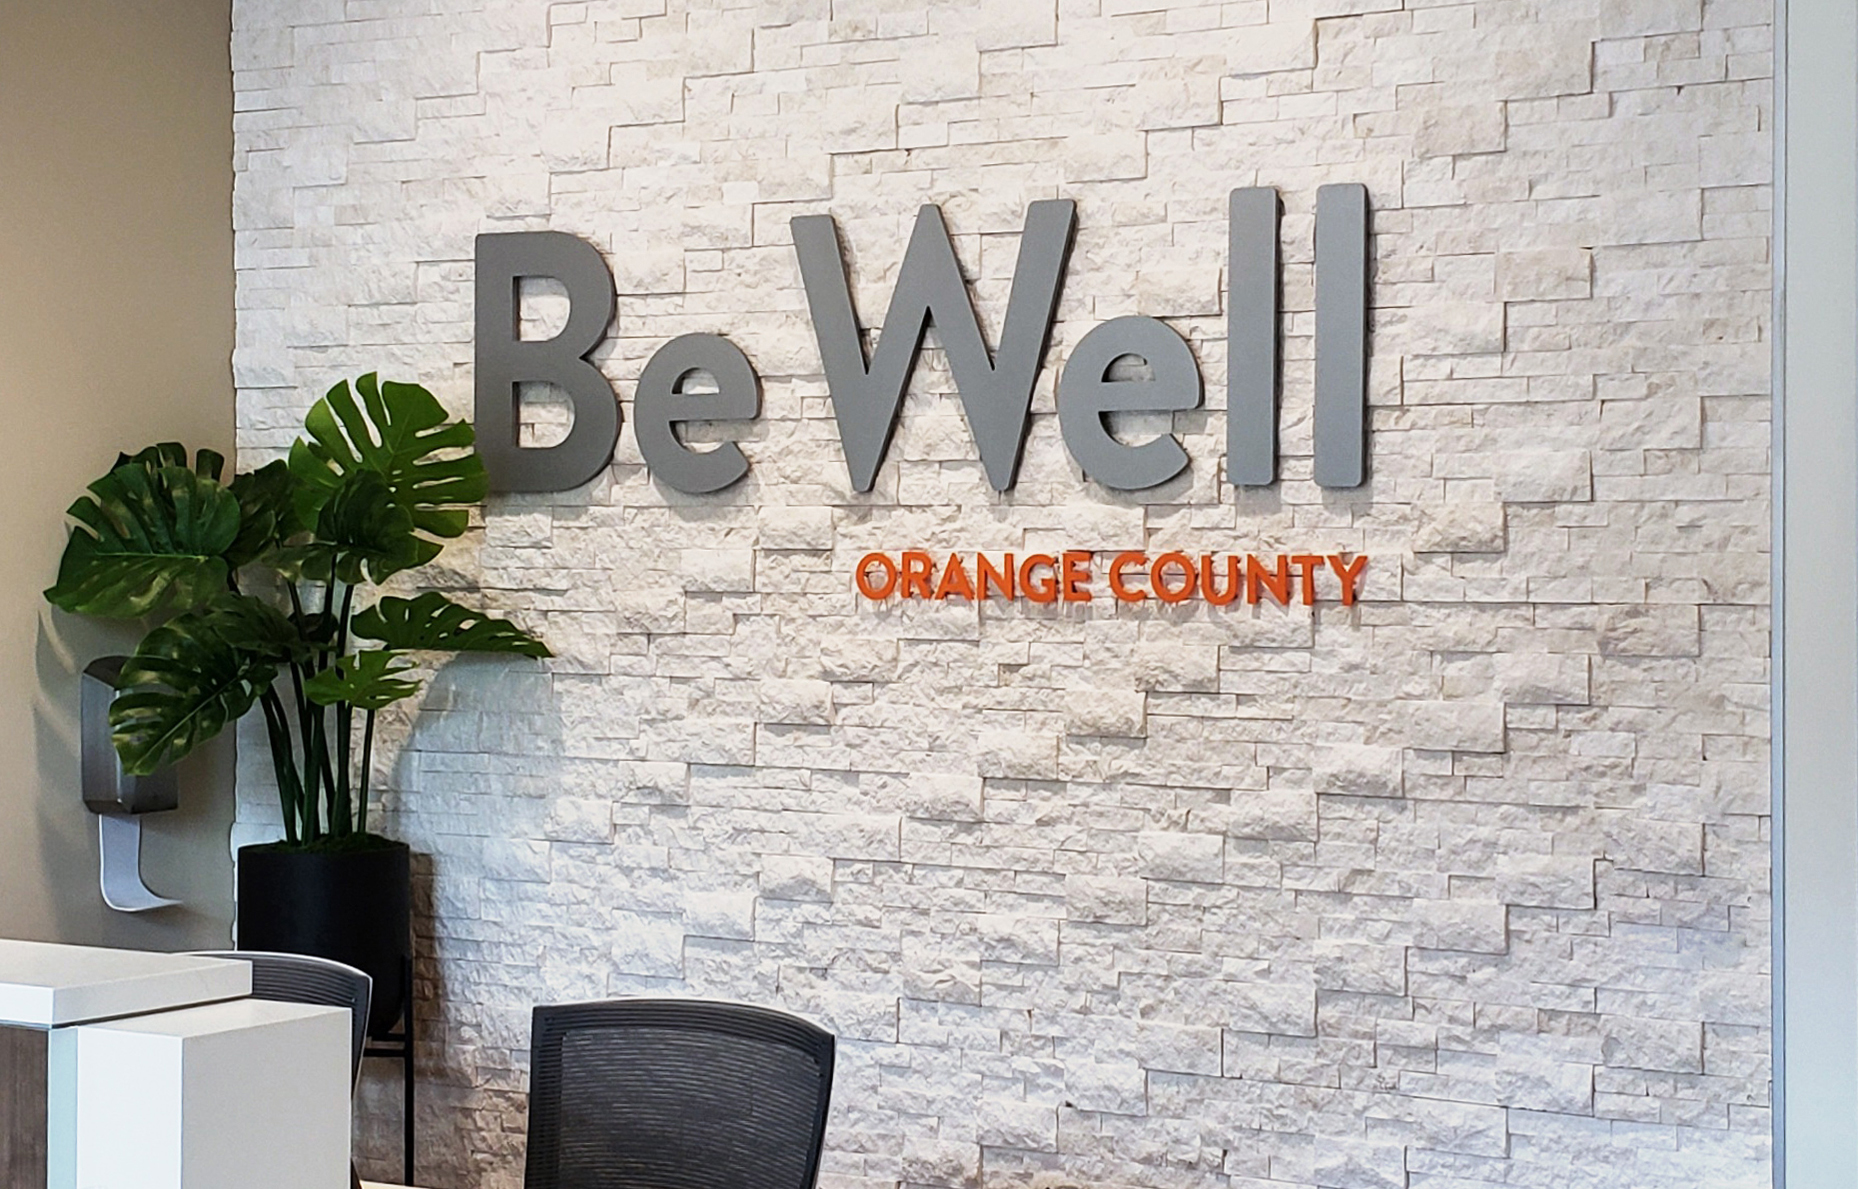 Ethos lettering at Be Well